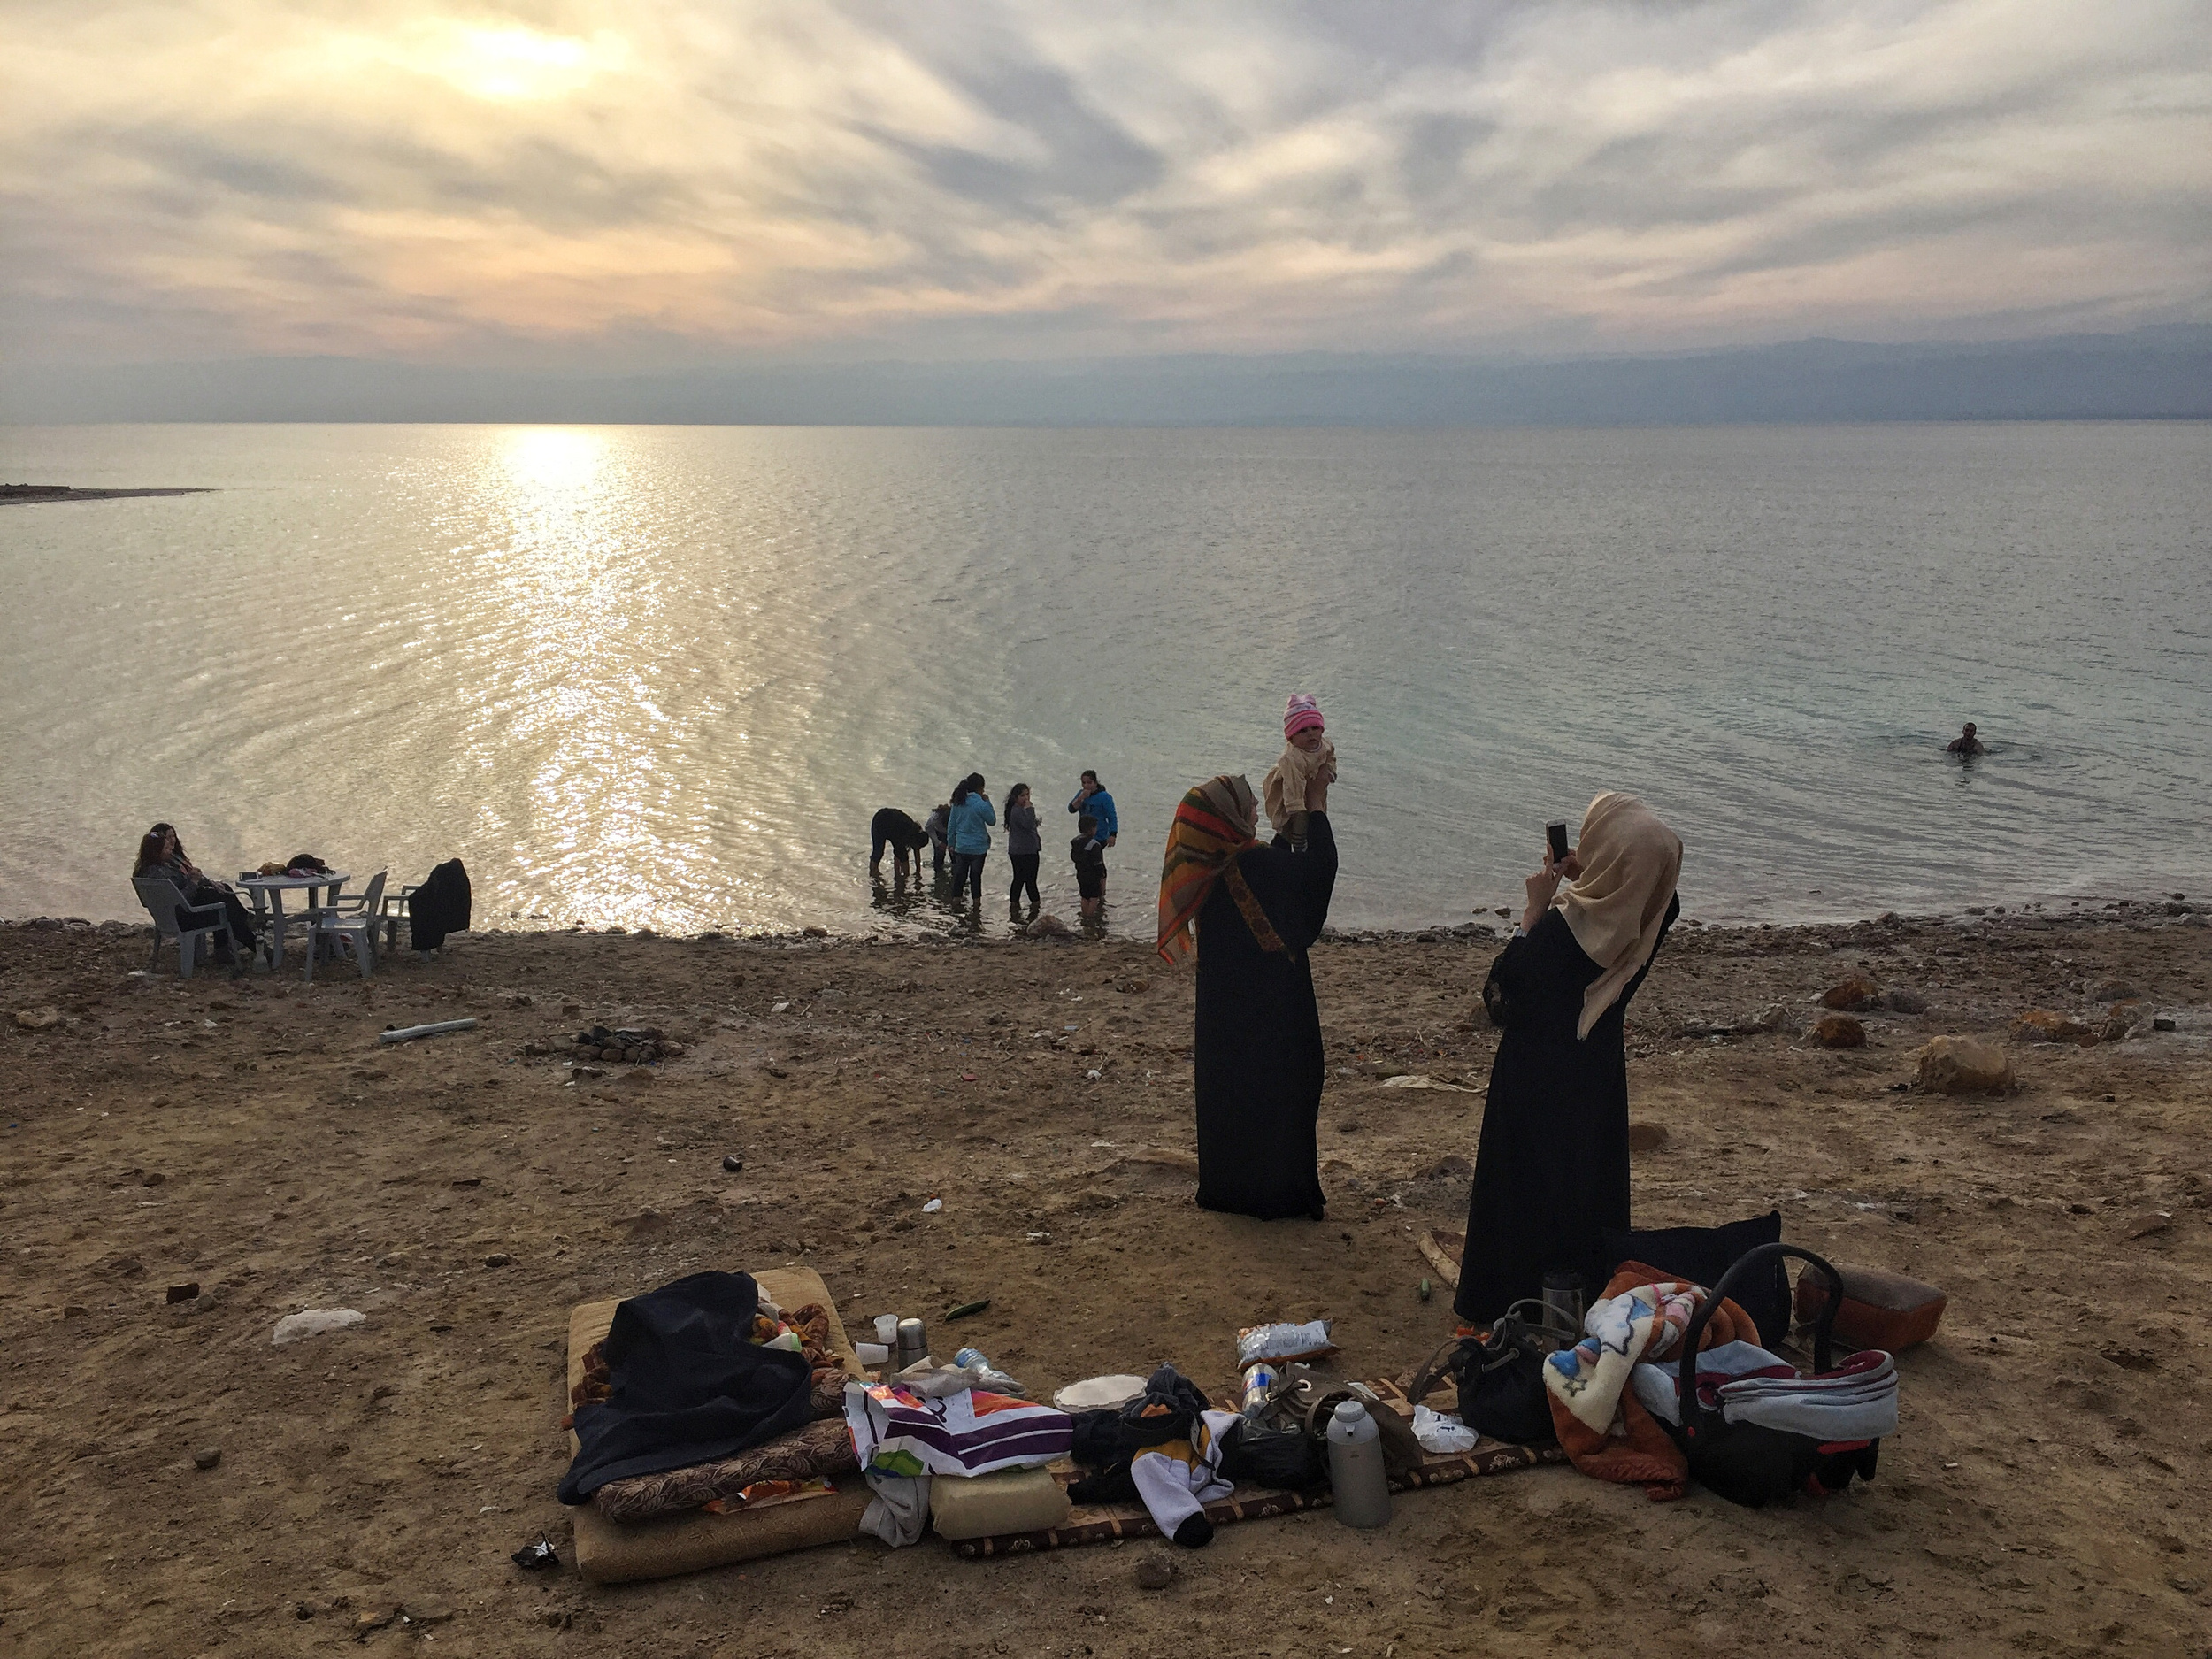 Bathers in the Dead Sea, Jordan. The women sit and enjoy the scene whilst the men float in the water. Usually the men dip in after they've bathed themselves with the natural mud, seeping from the layers of the beach. (Tasneem Alsultan)